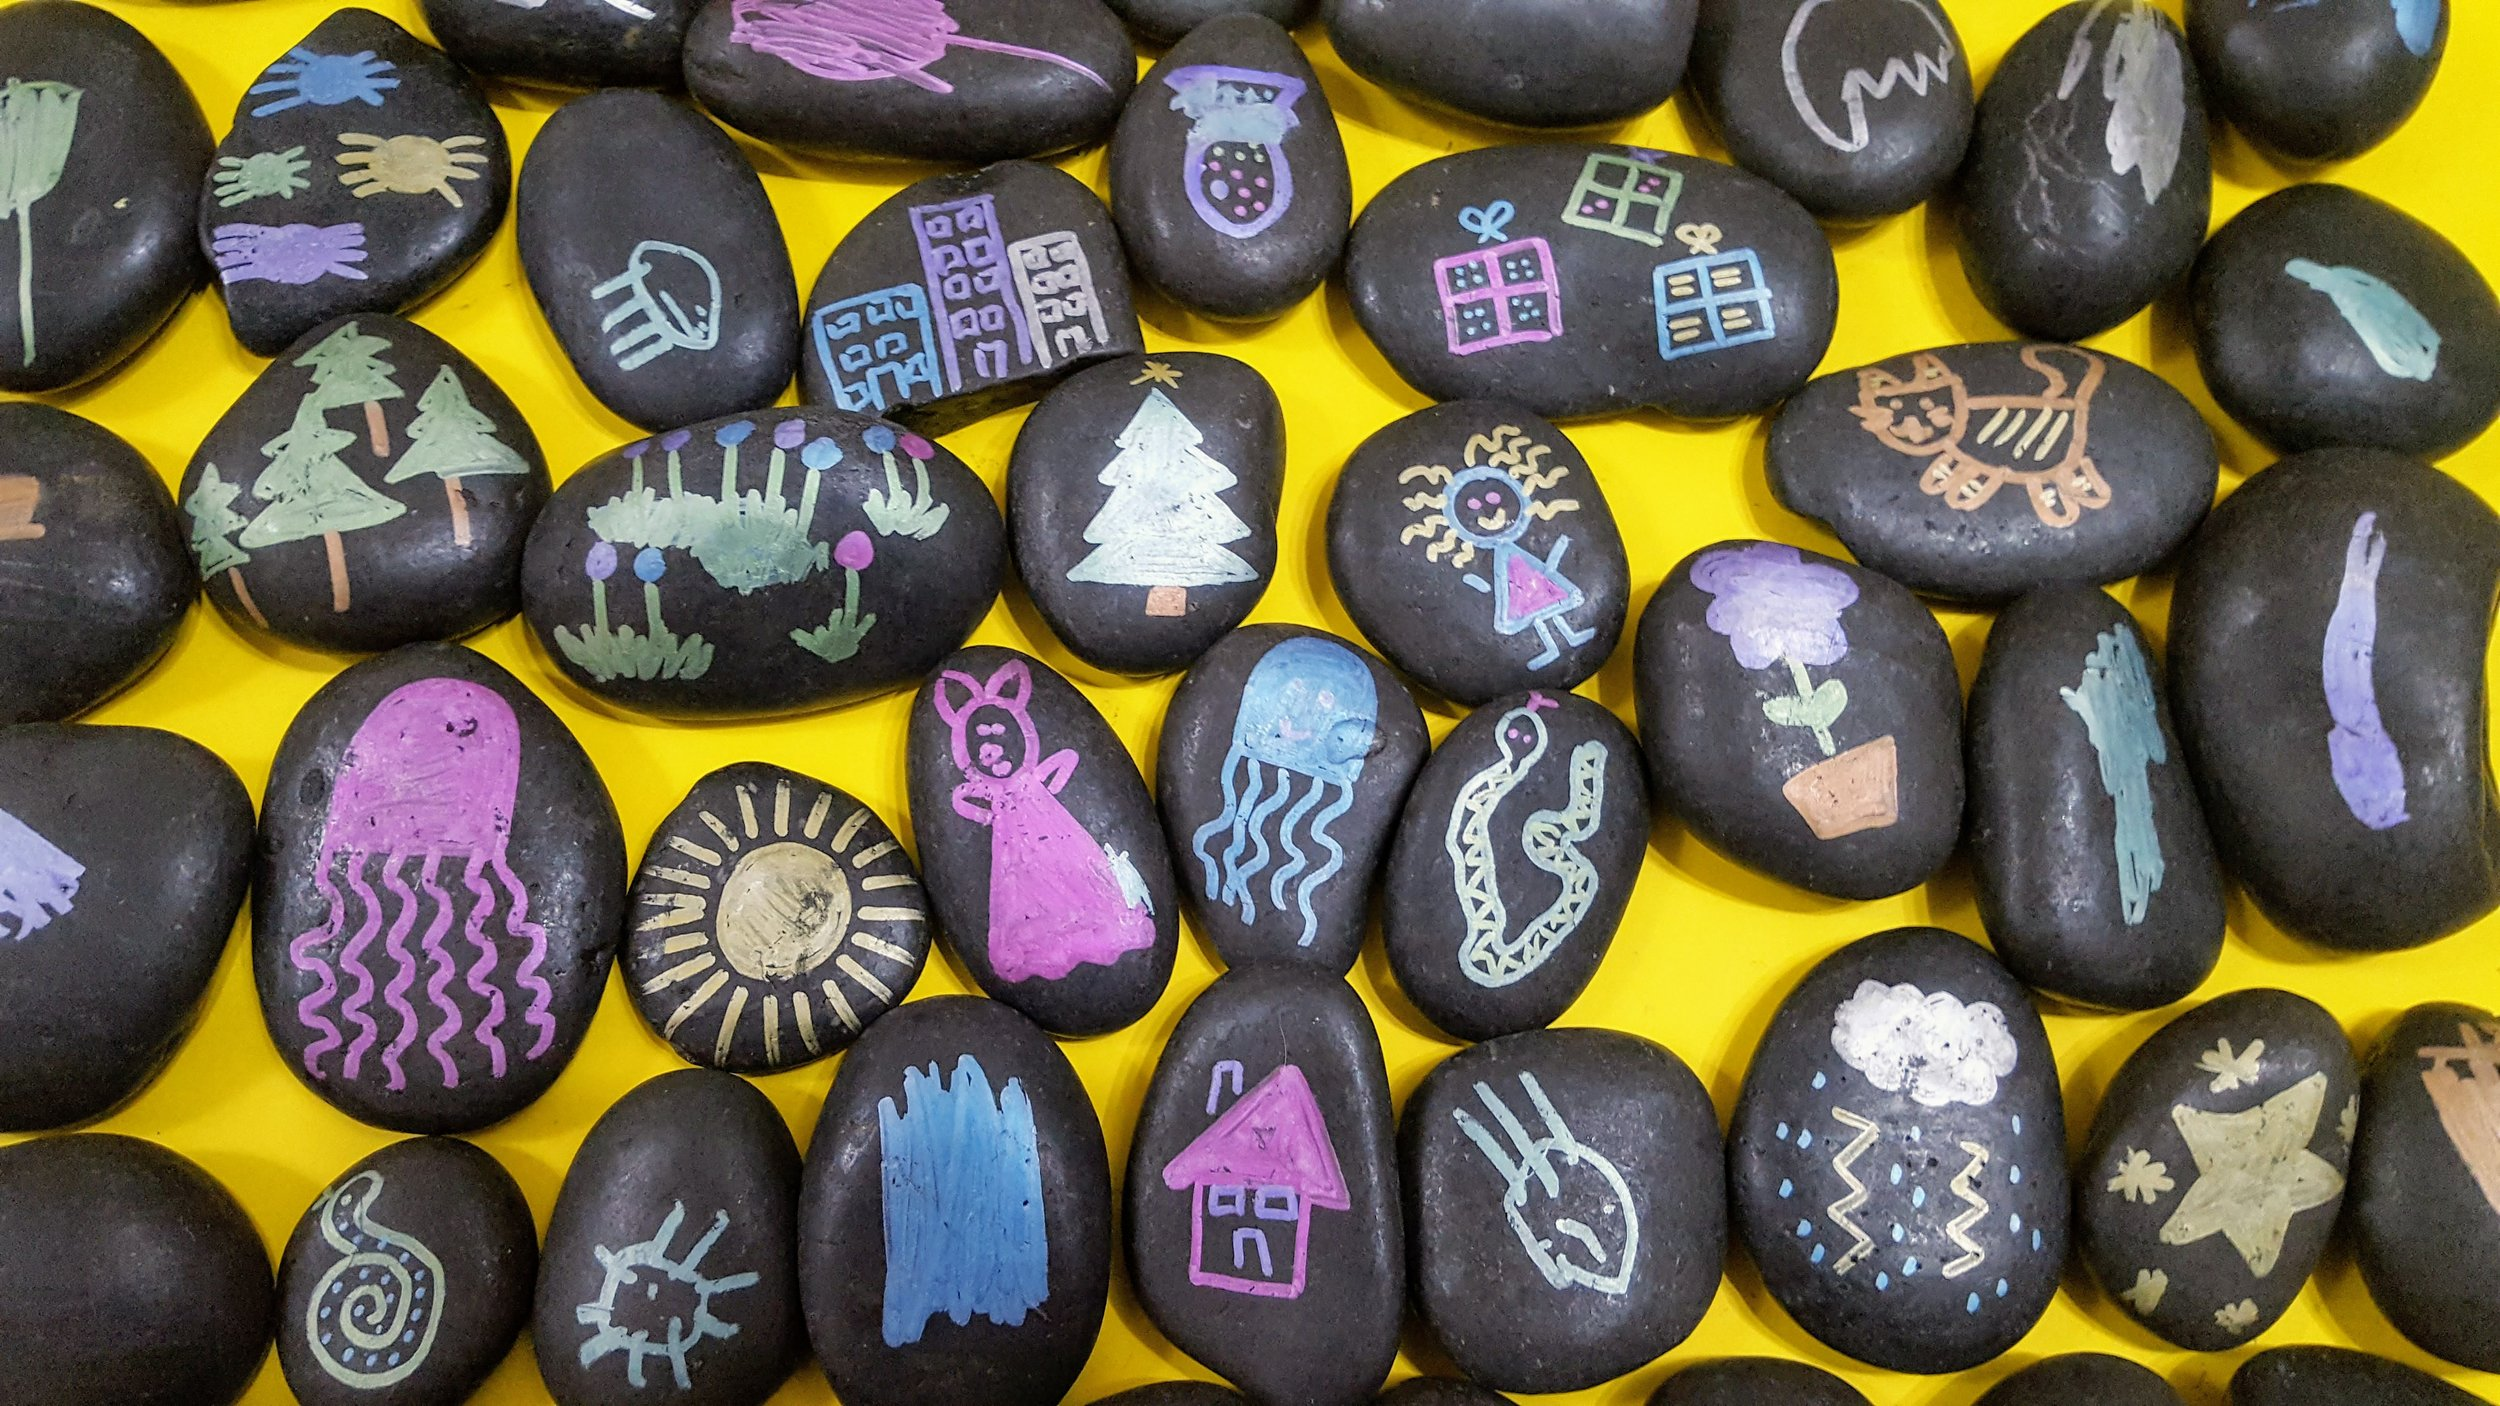 Picture of story stones